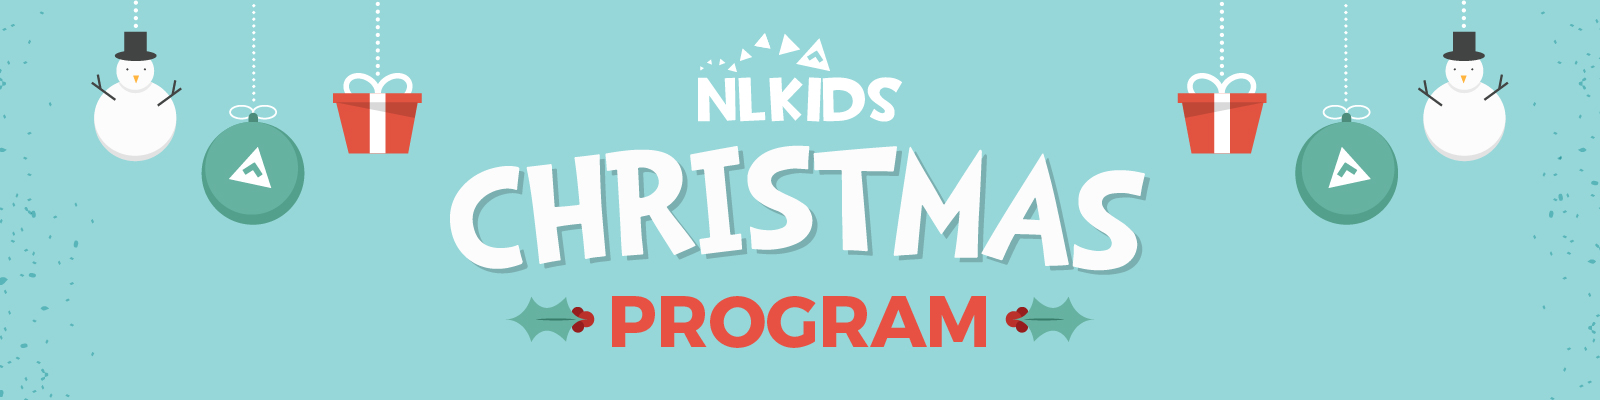 NL Kids Christmas Program - New Life Church